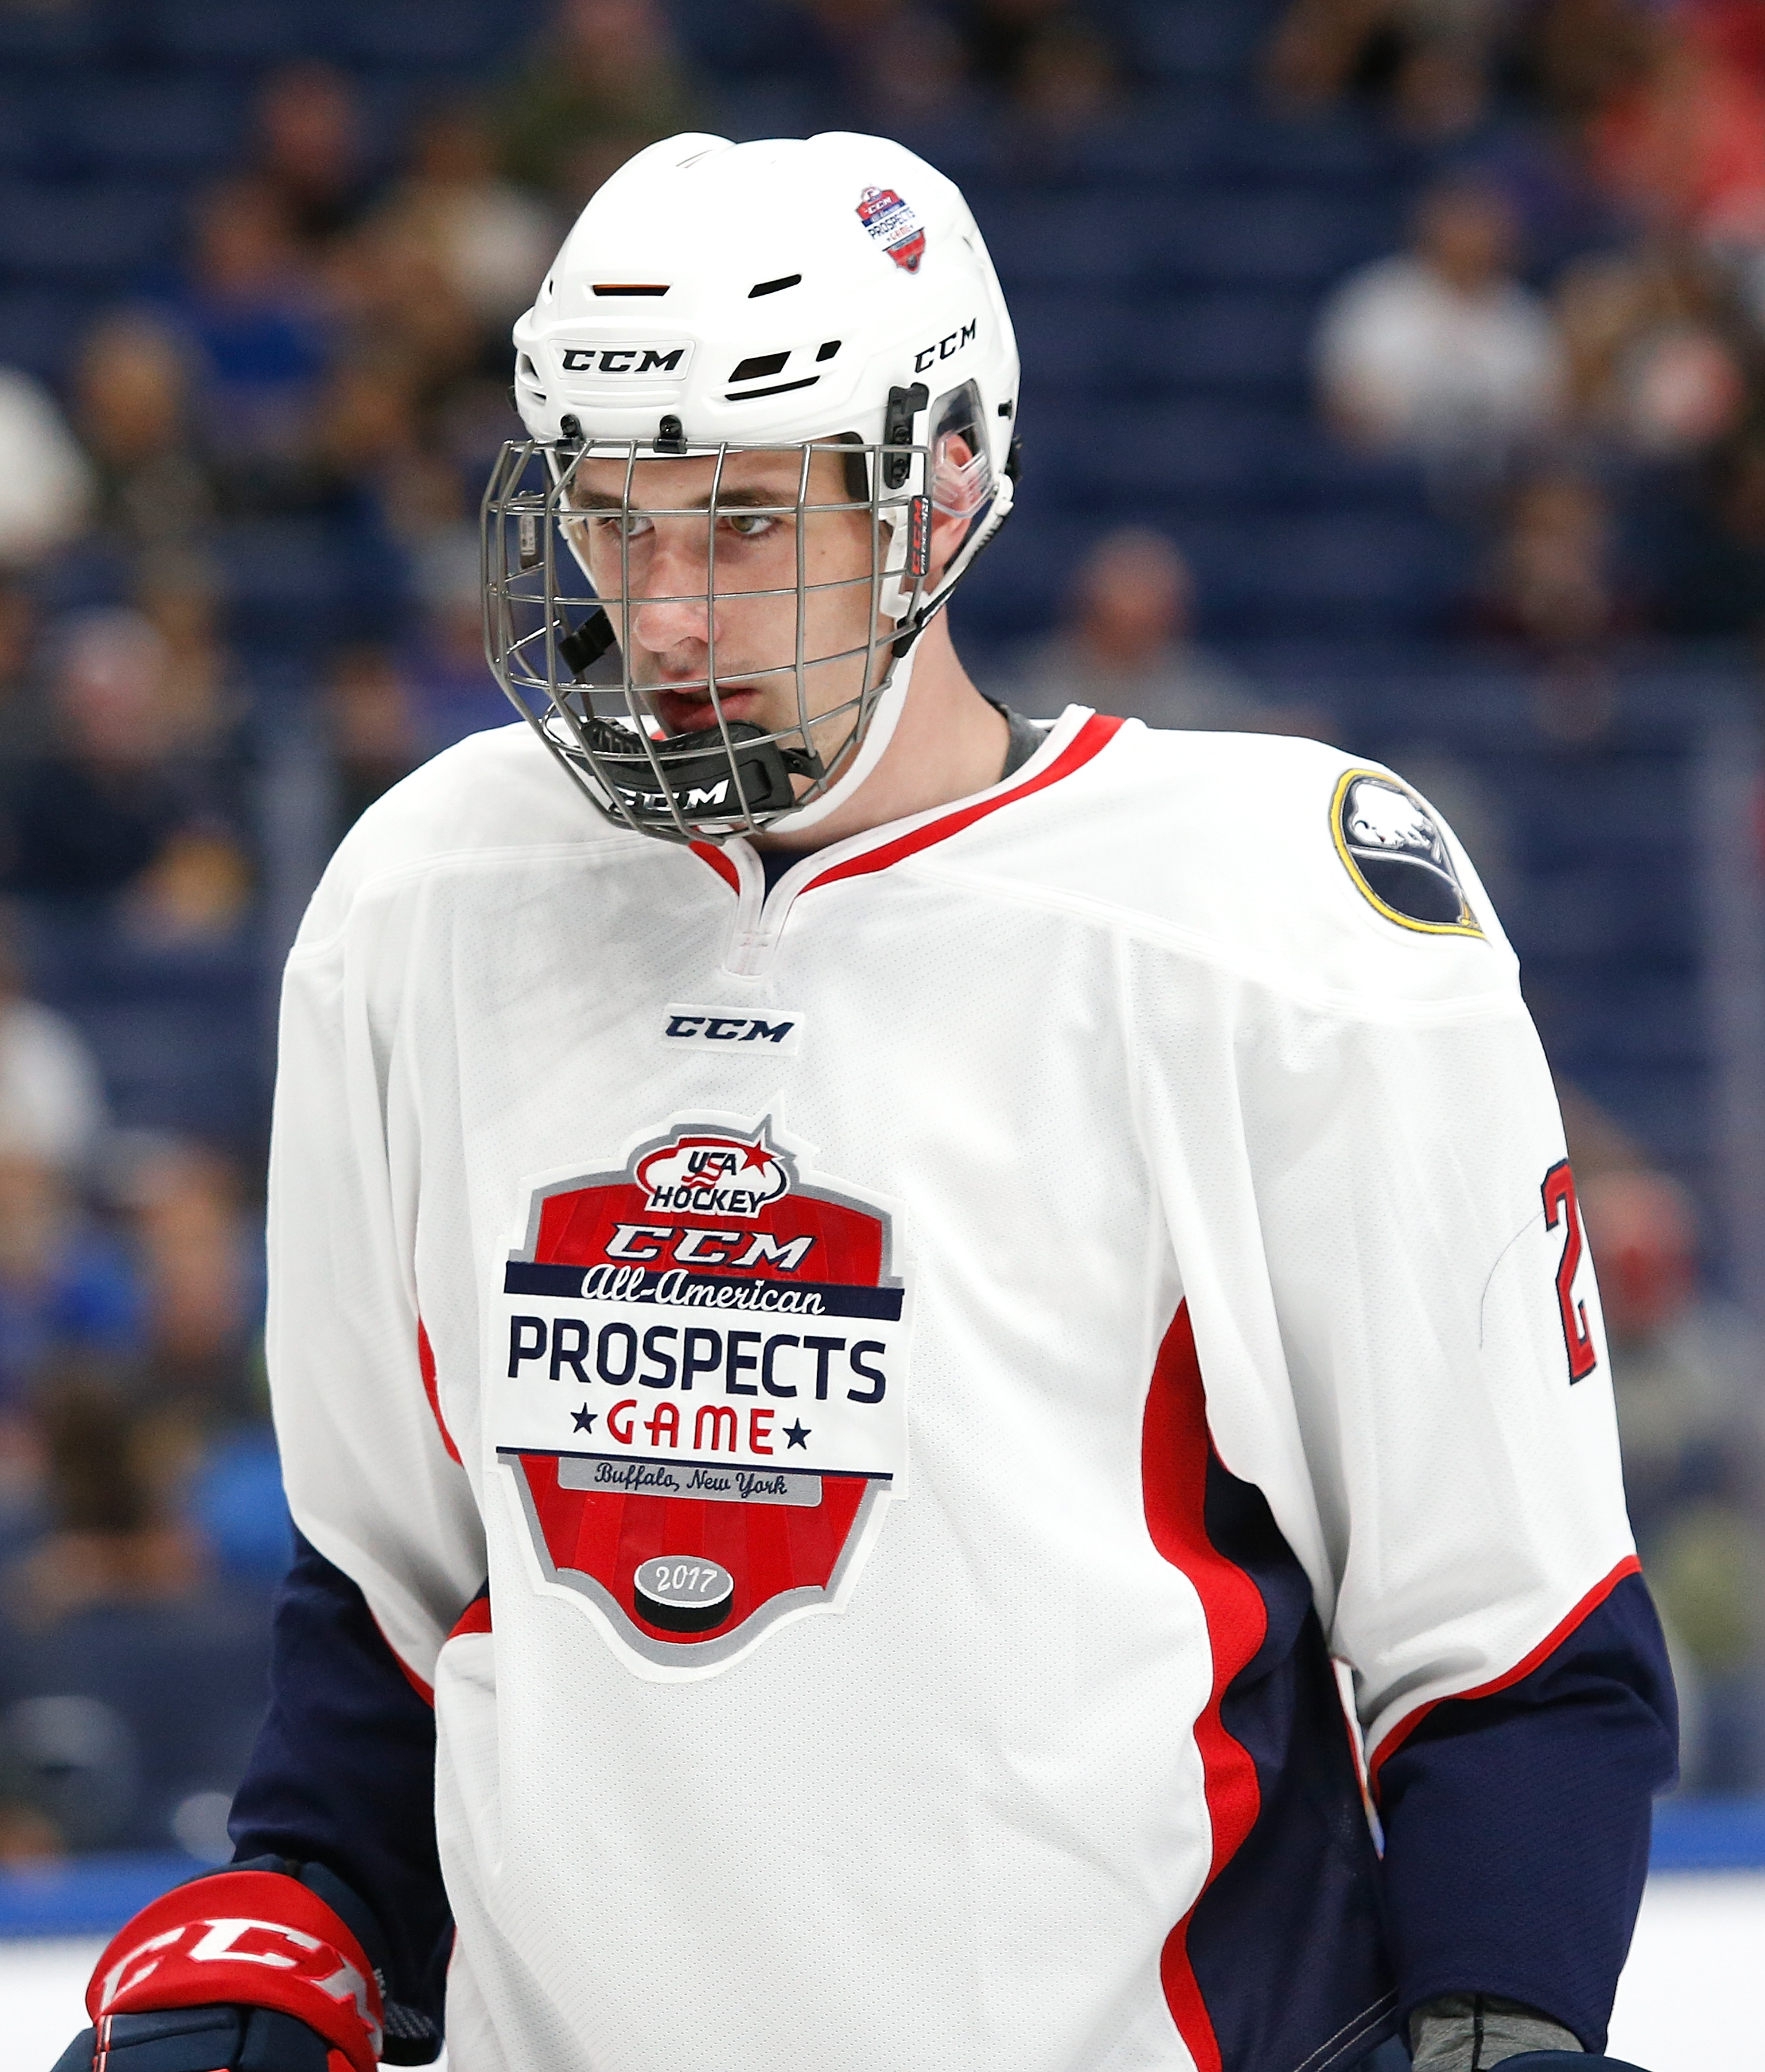 Mattias Samuelsson: 2018 NHL Draft Prospect Profile; Big Defender From Voorhees NJ